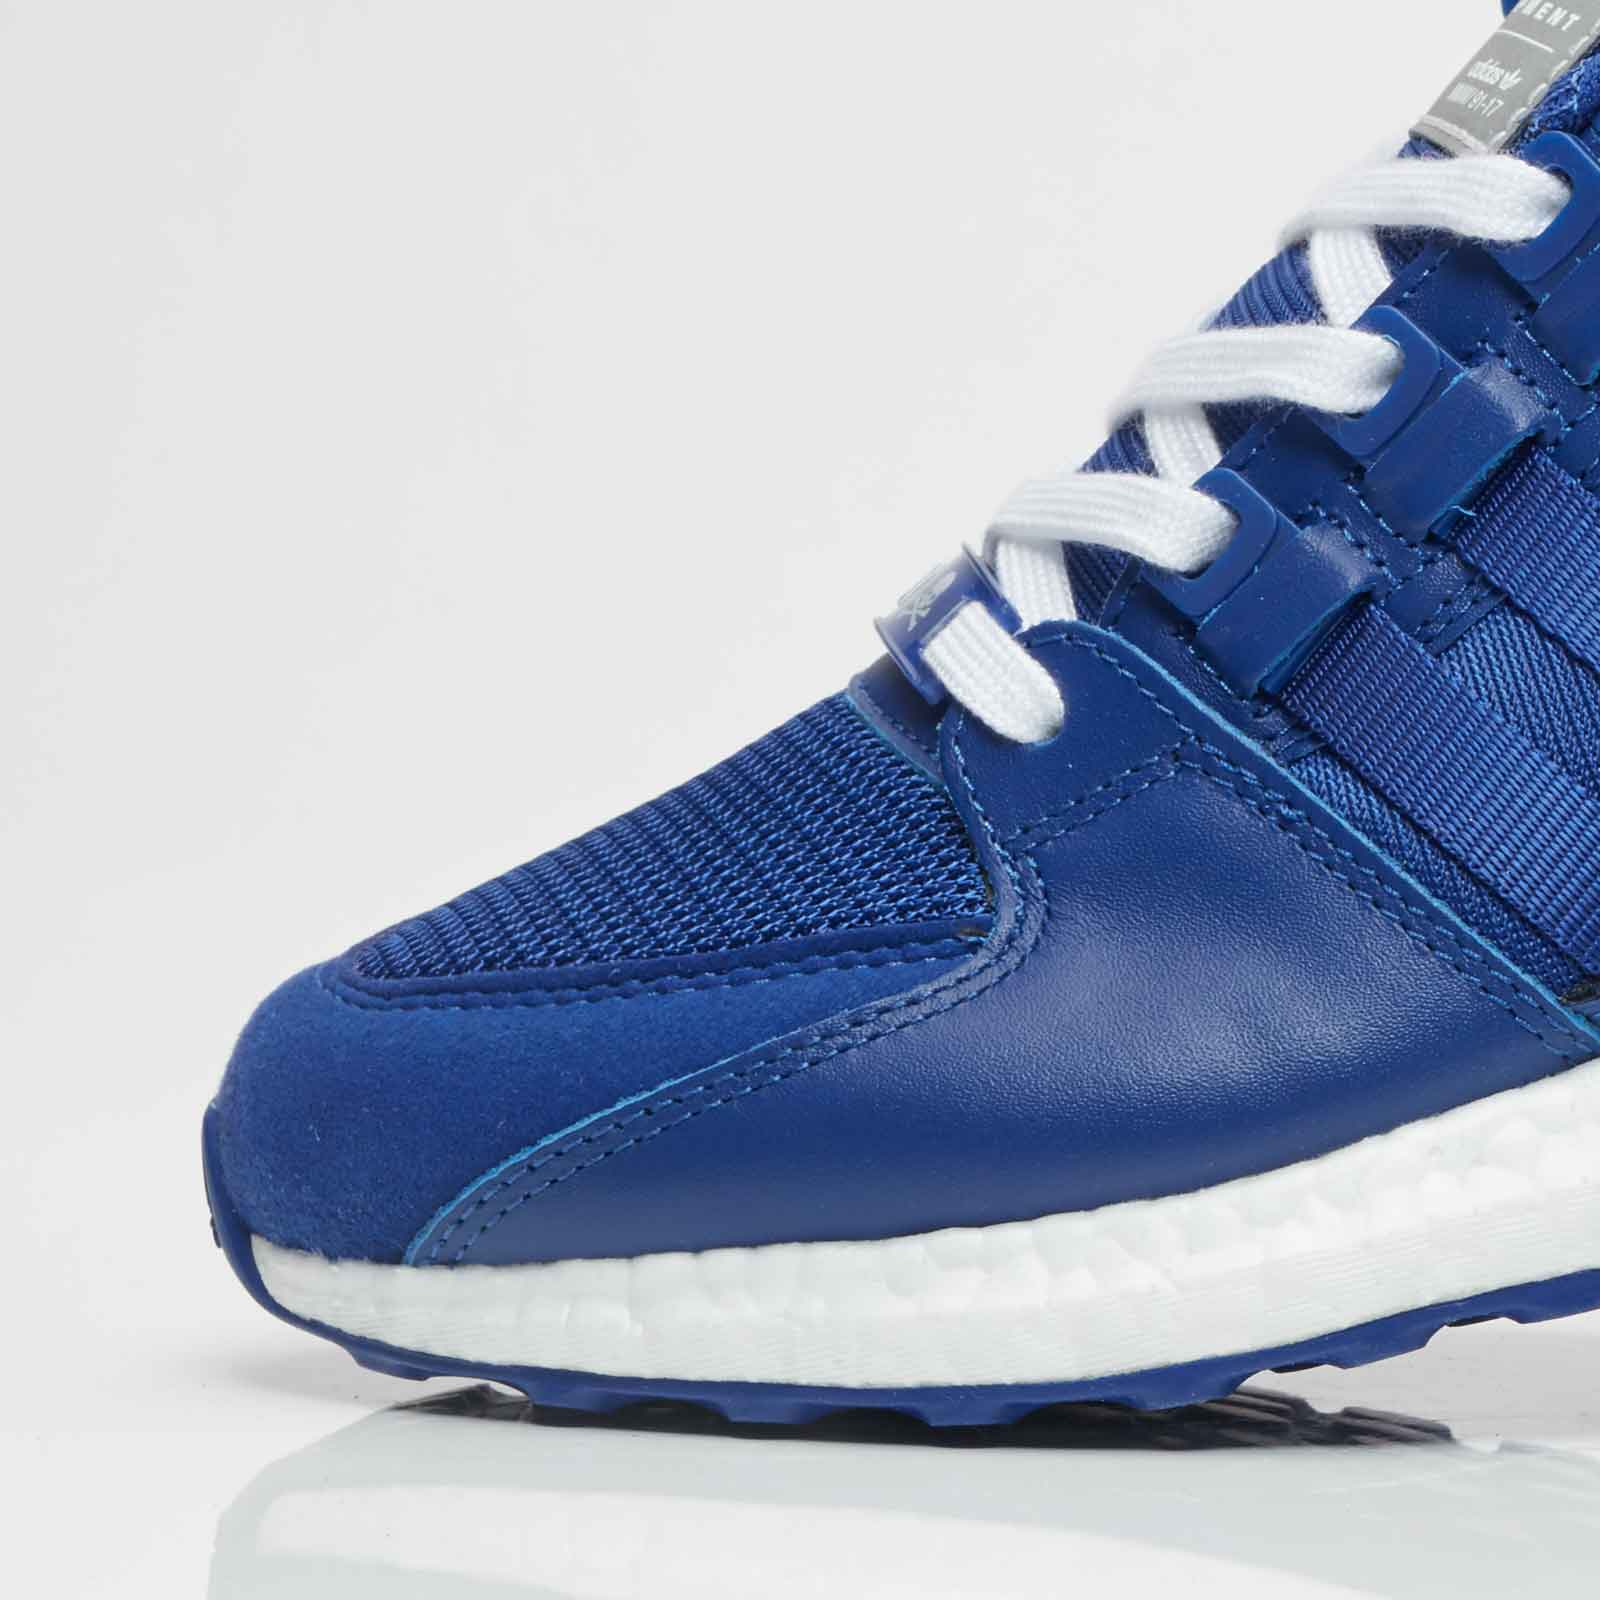 ... adidas Originals EQT Support Ultra by Mastermind World ... 6d48496afc80